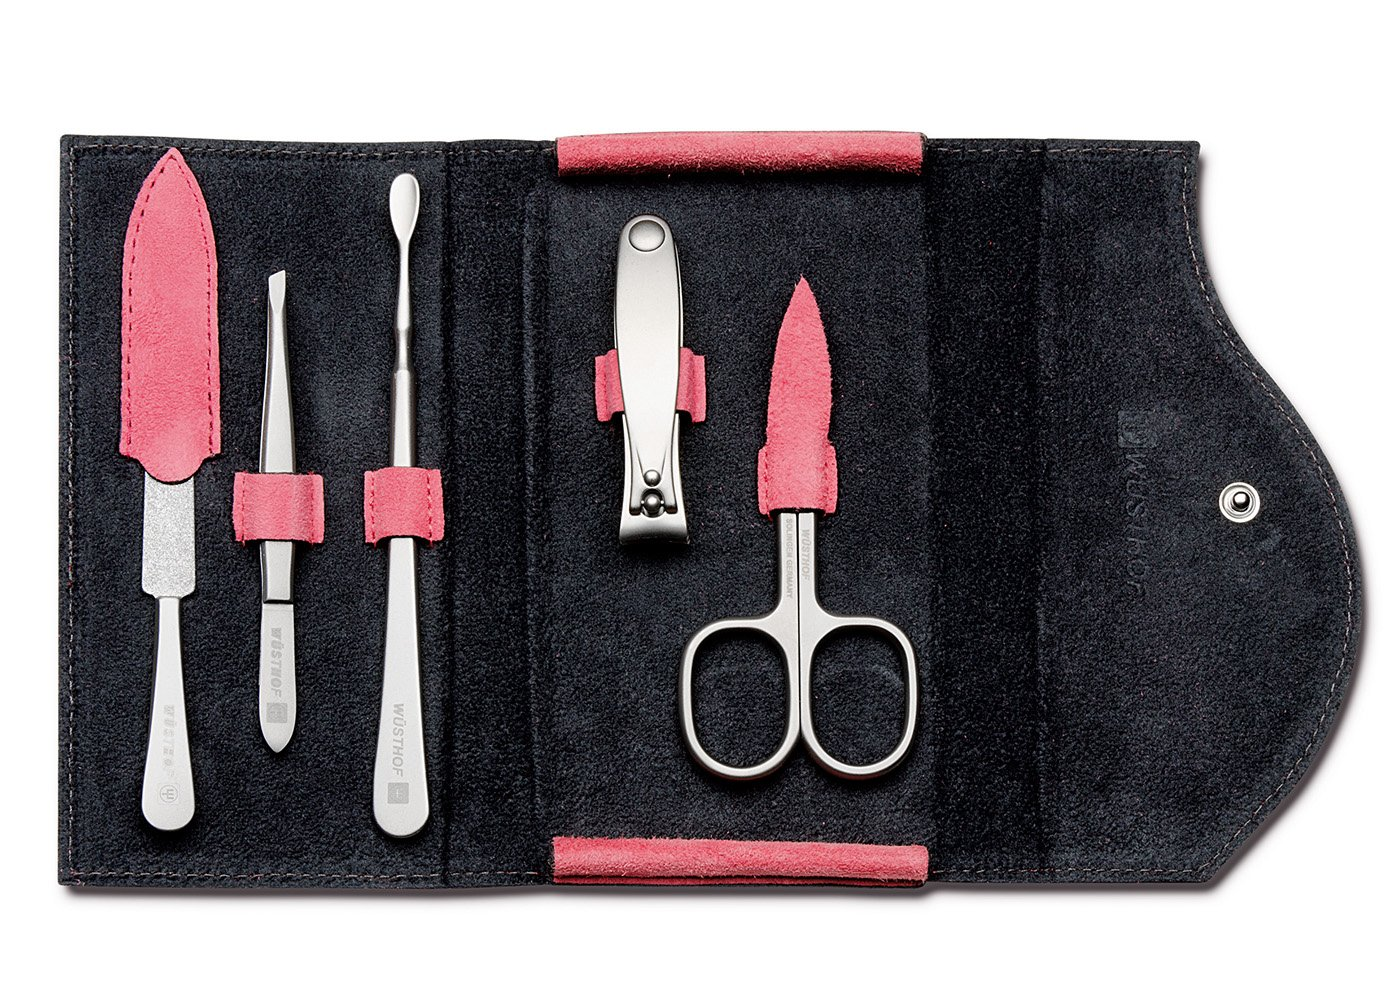 Wusthof Stainless Steel 6 Piece Manicure Set with Pink Case 9135